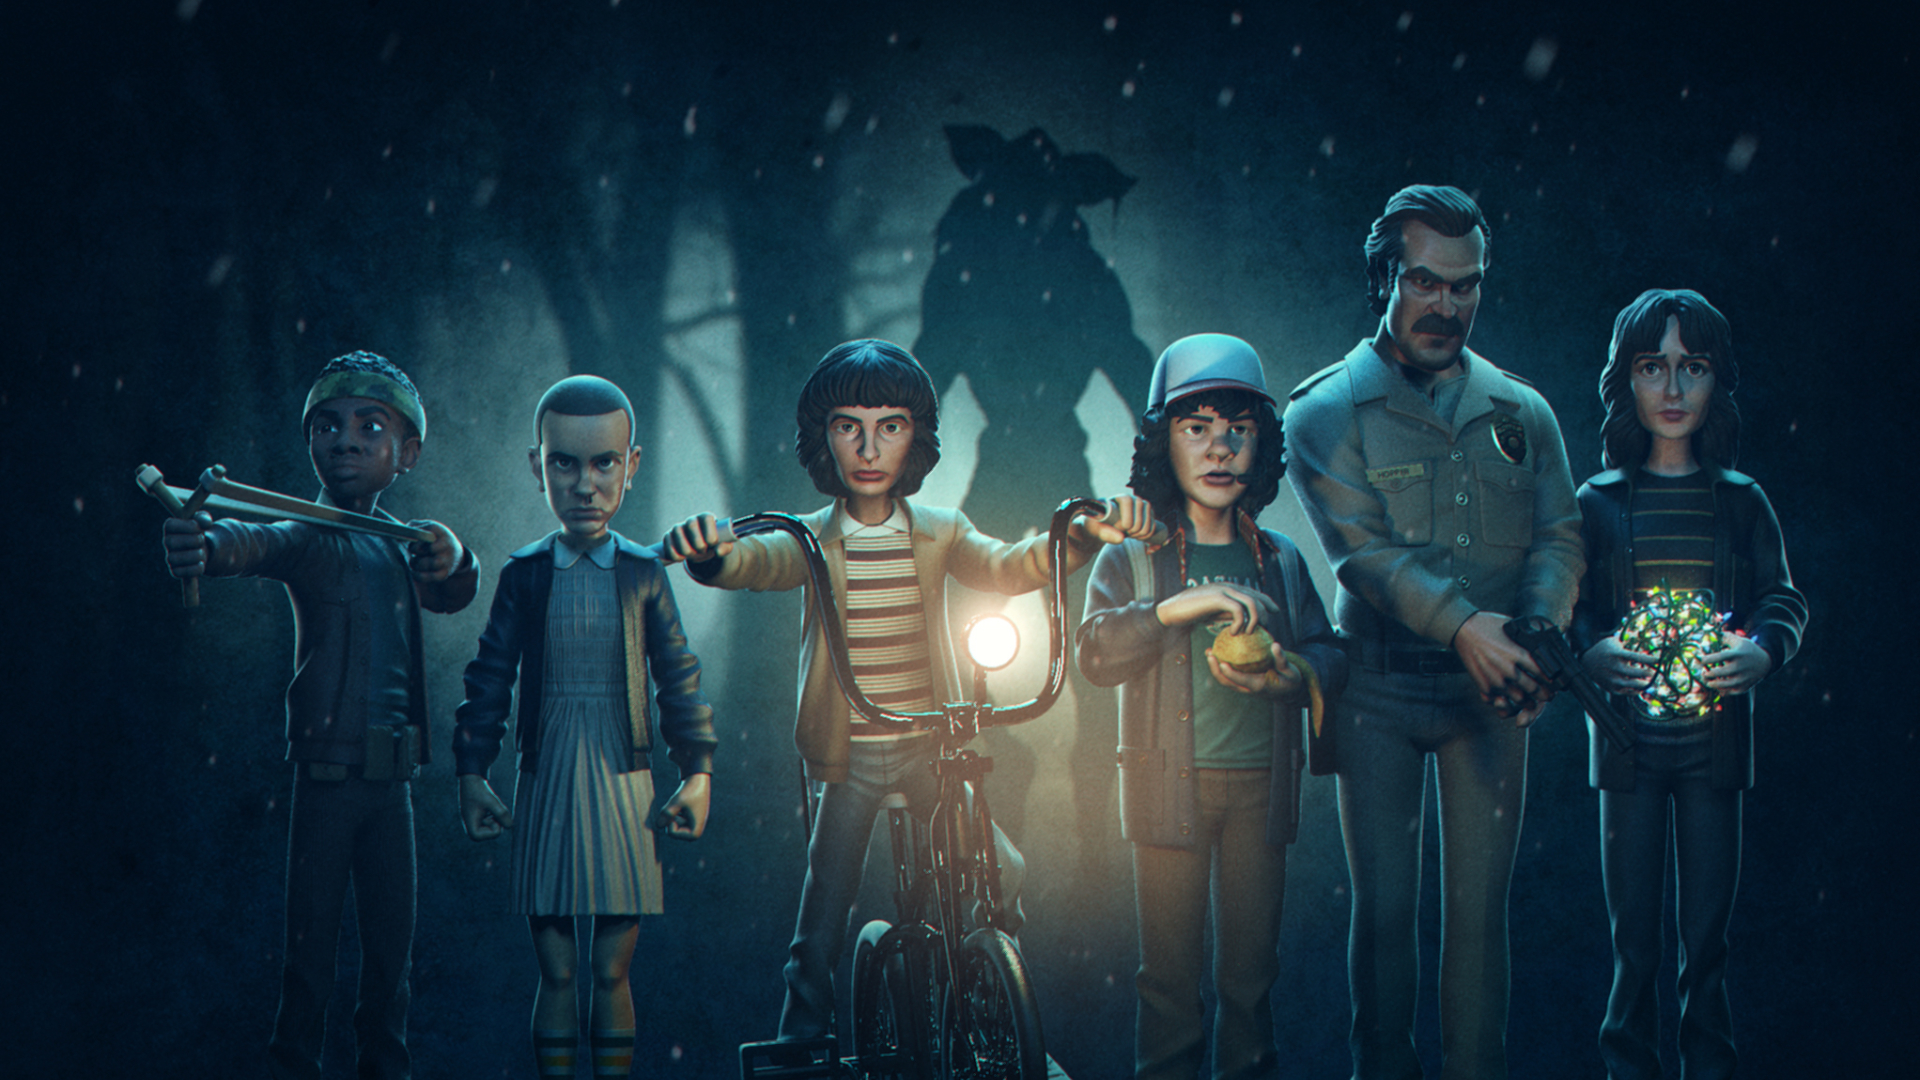 1920x1080 Stranger Things Season 4 Artwork 1080p Laptop Full